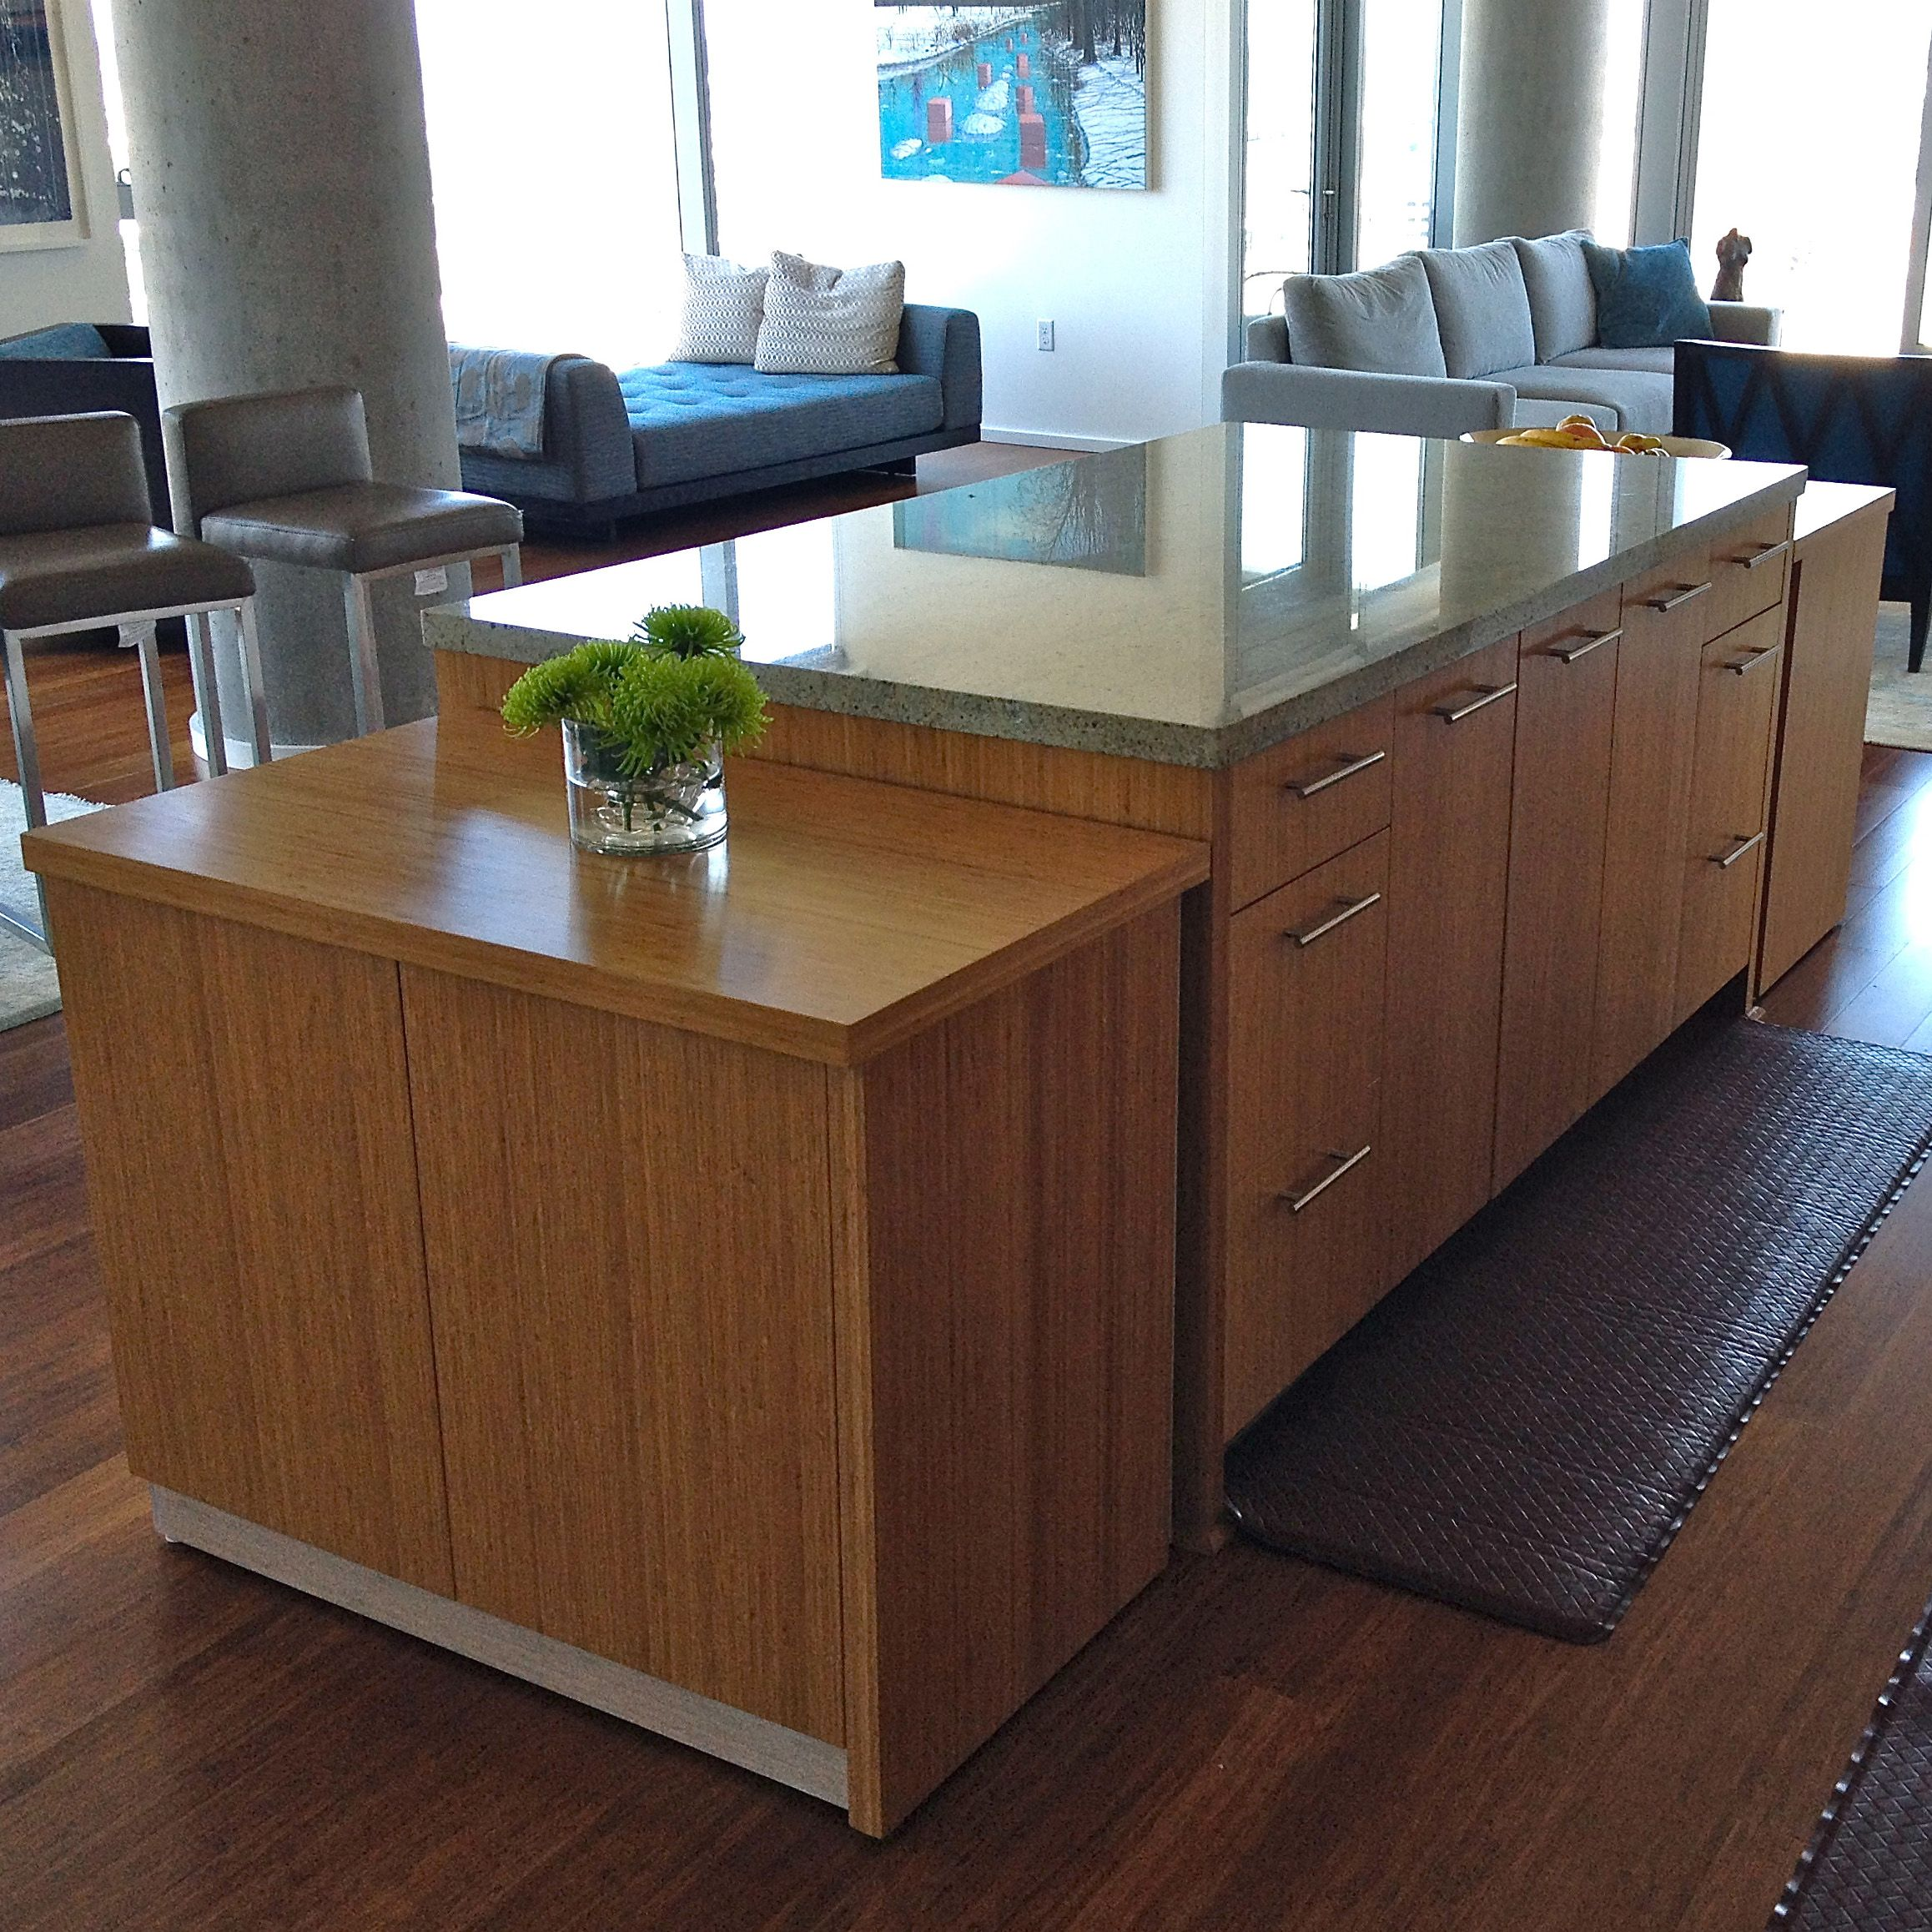 Custom Kitchen Island For Sale: Custom Modern Bamboo Cabinets By Philosophy With A Hammer